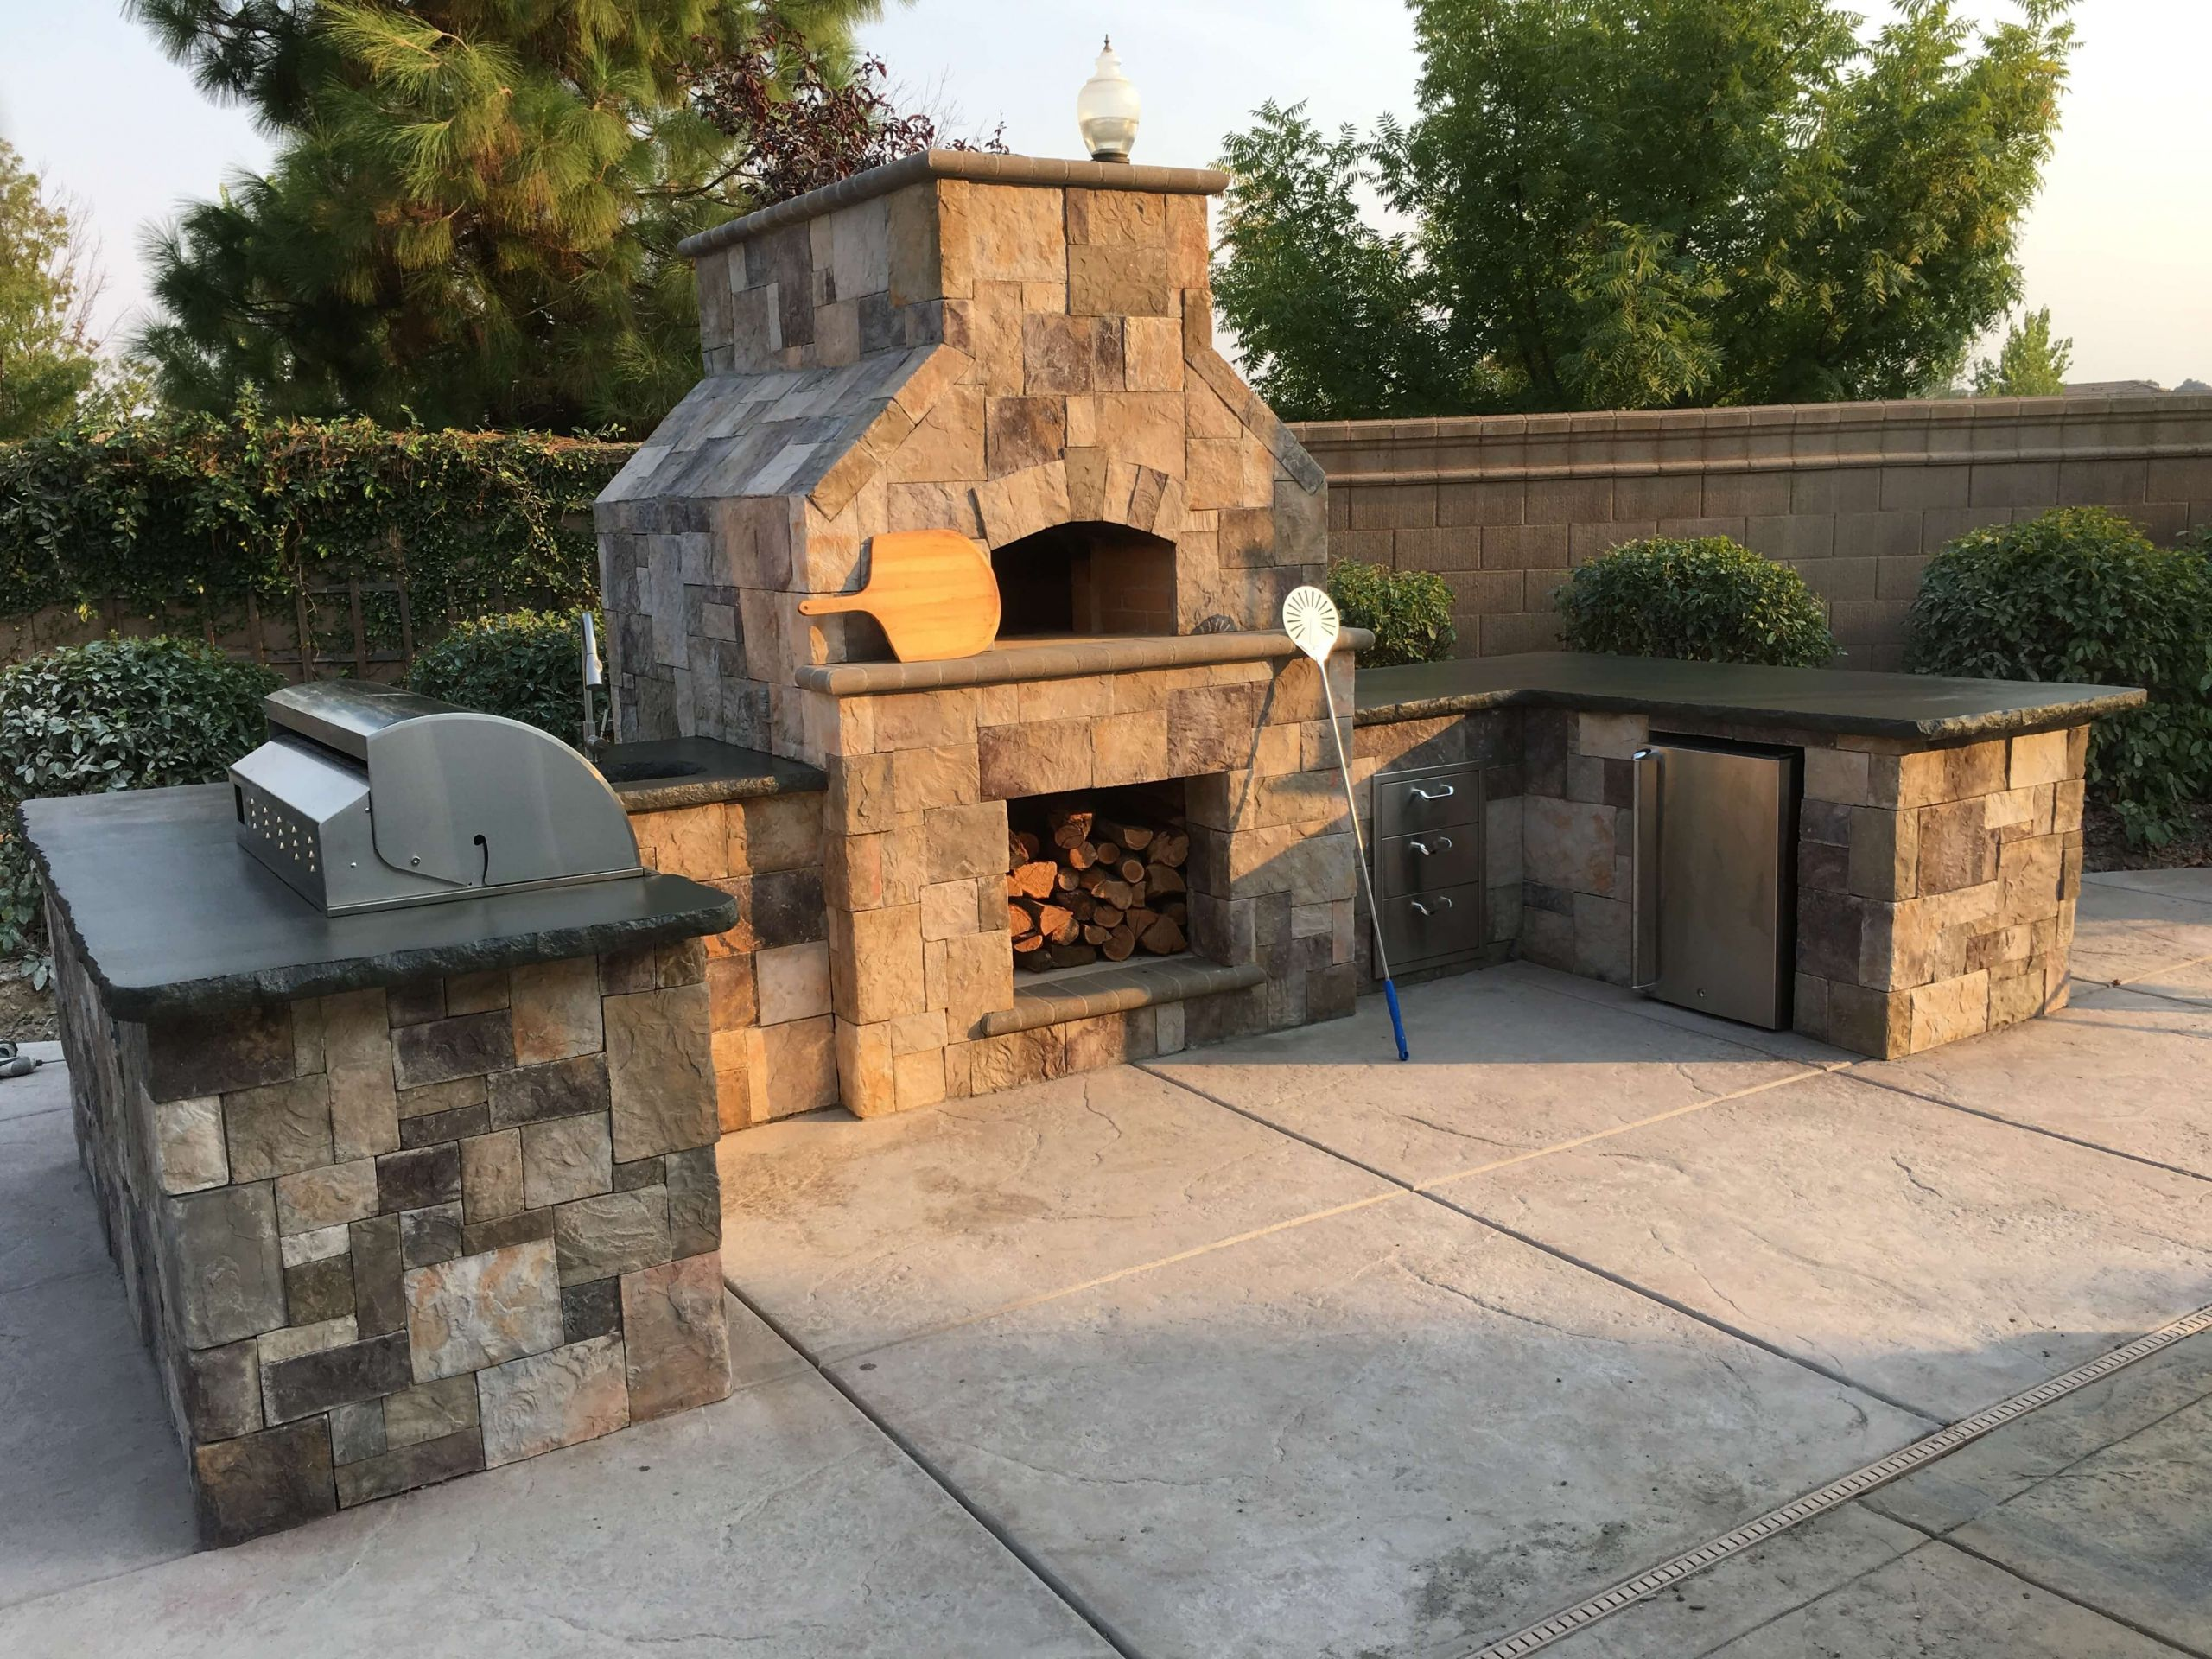 Outdoor Pizza Oven Plans DIY  Forno Toscano Pizza Oven